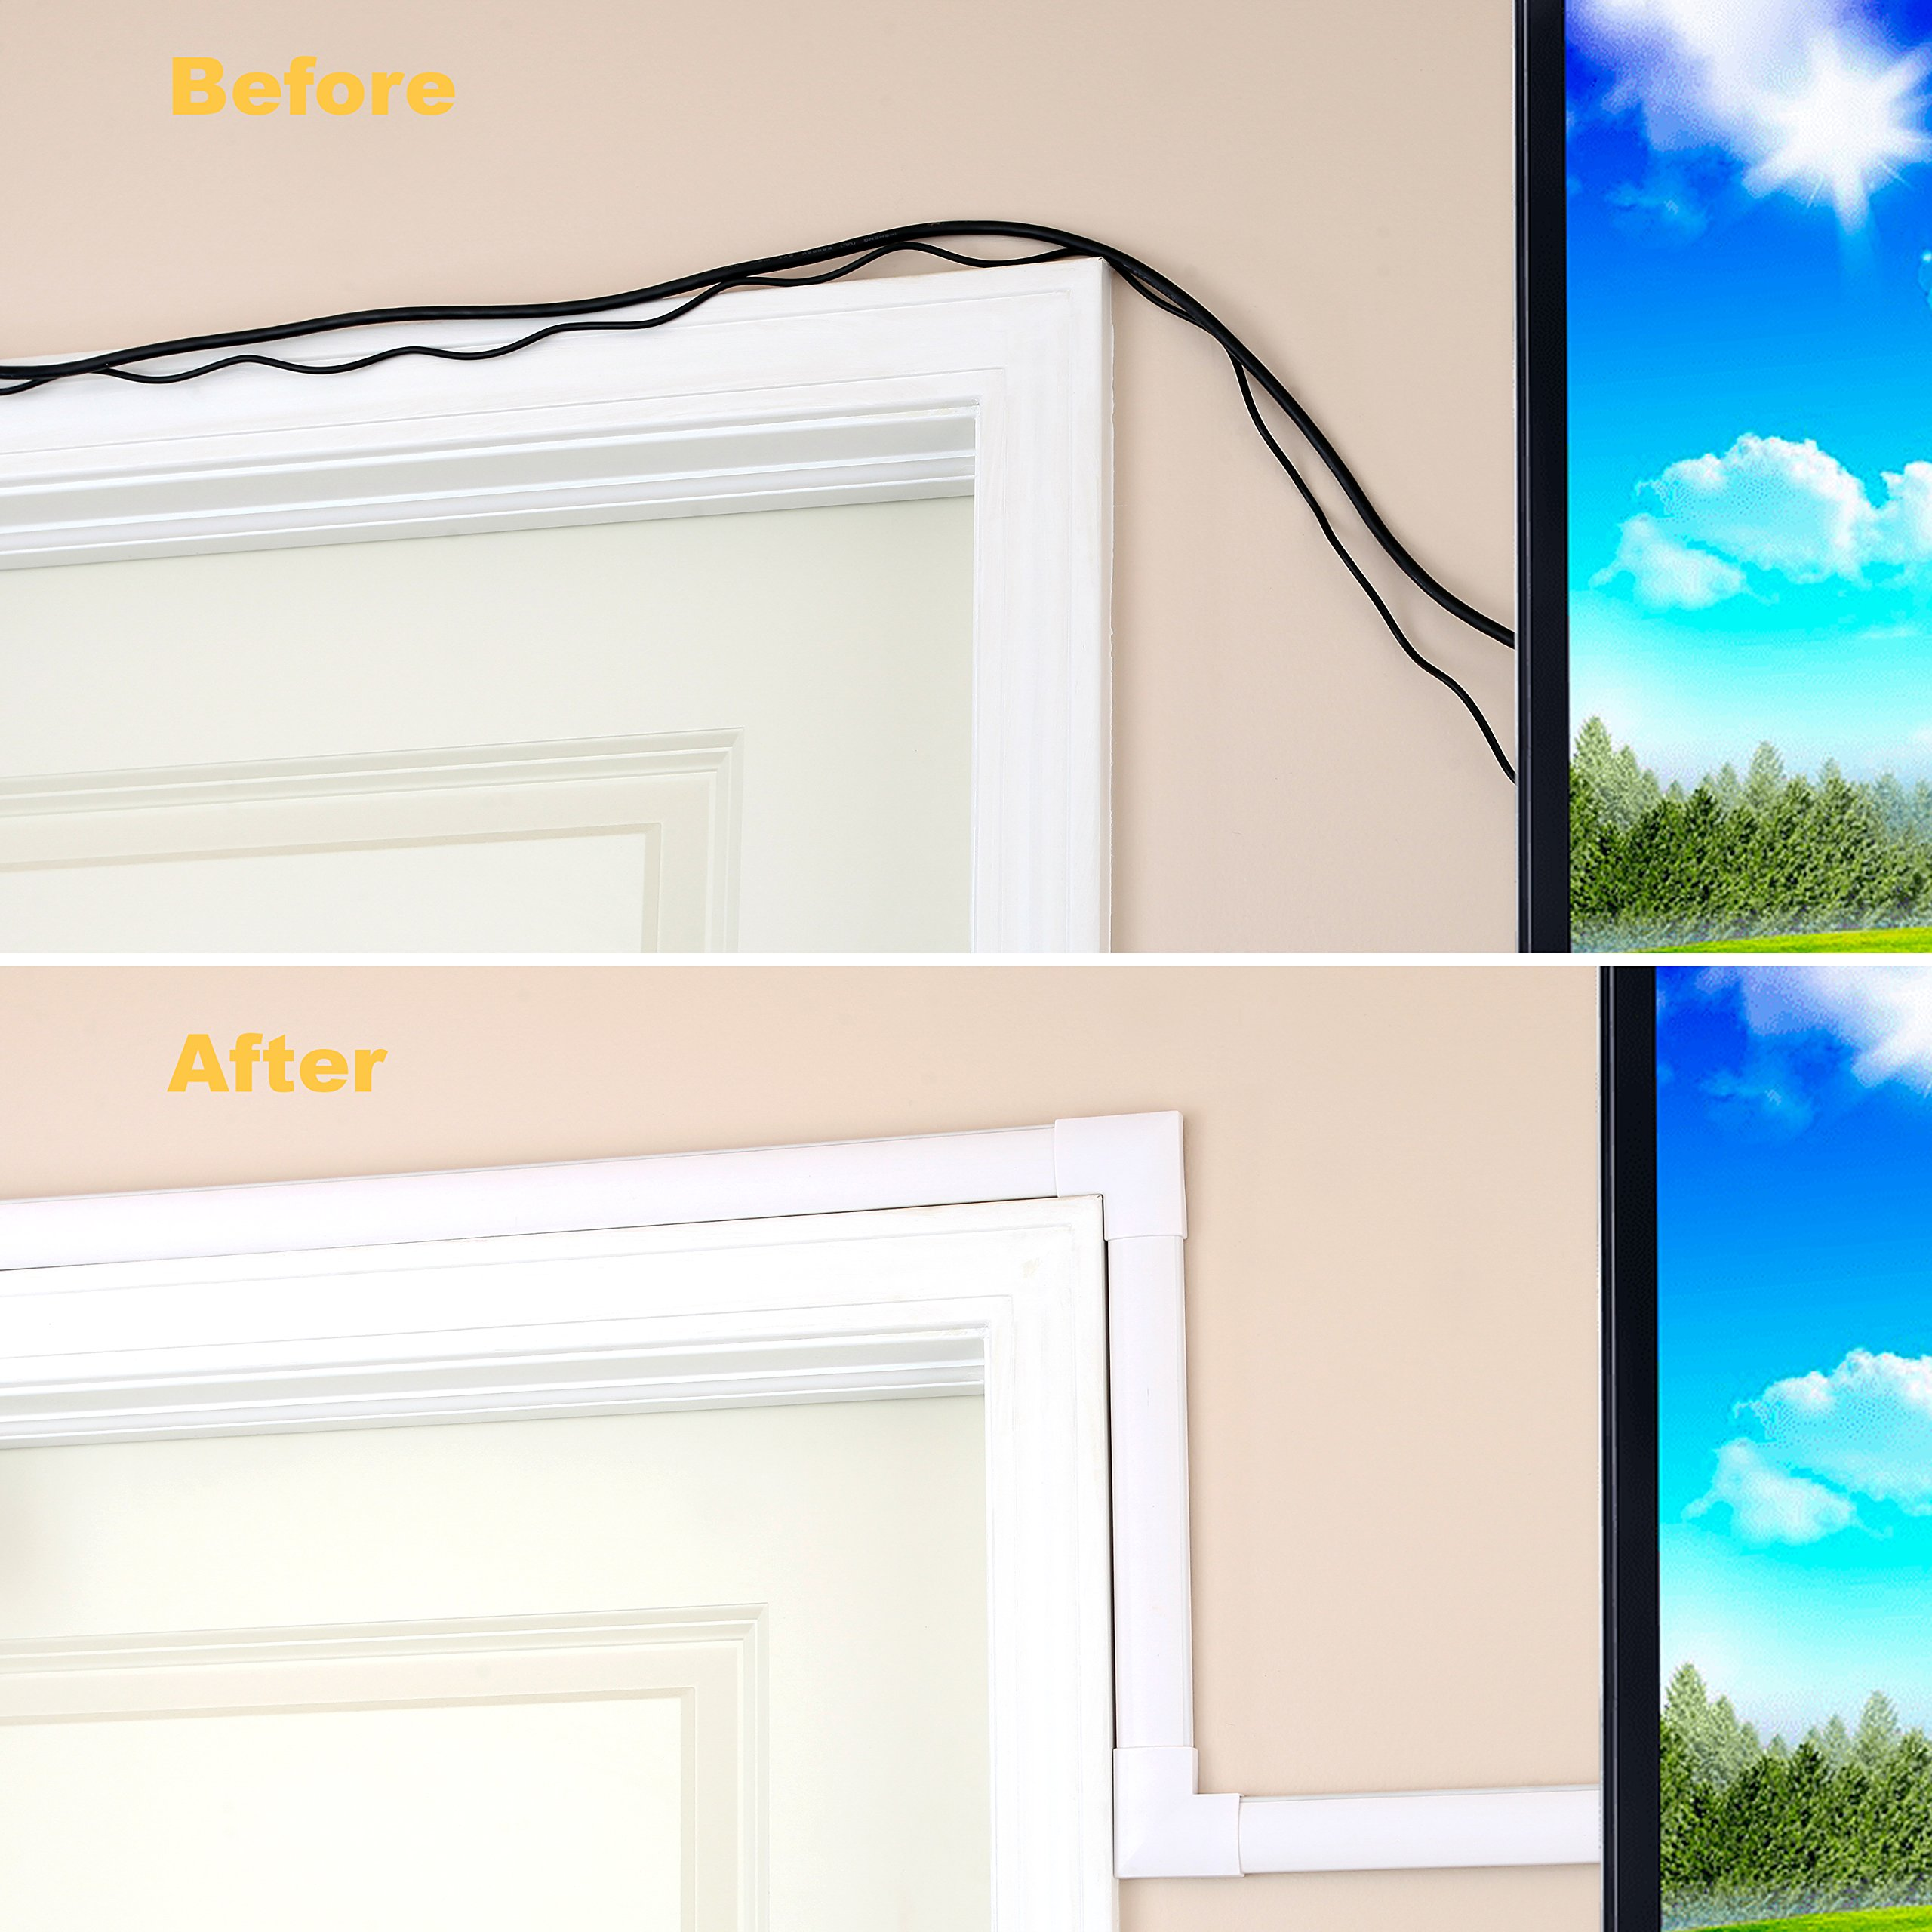 Cord Concealer System Covers Cables, Cords Wires - Cable Cover Management Raceway Kit Hiding Wall Mount TV Power Cords in Home Office - SimpleCord by SimpleCord (Image #6)